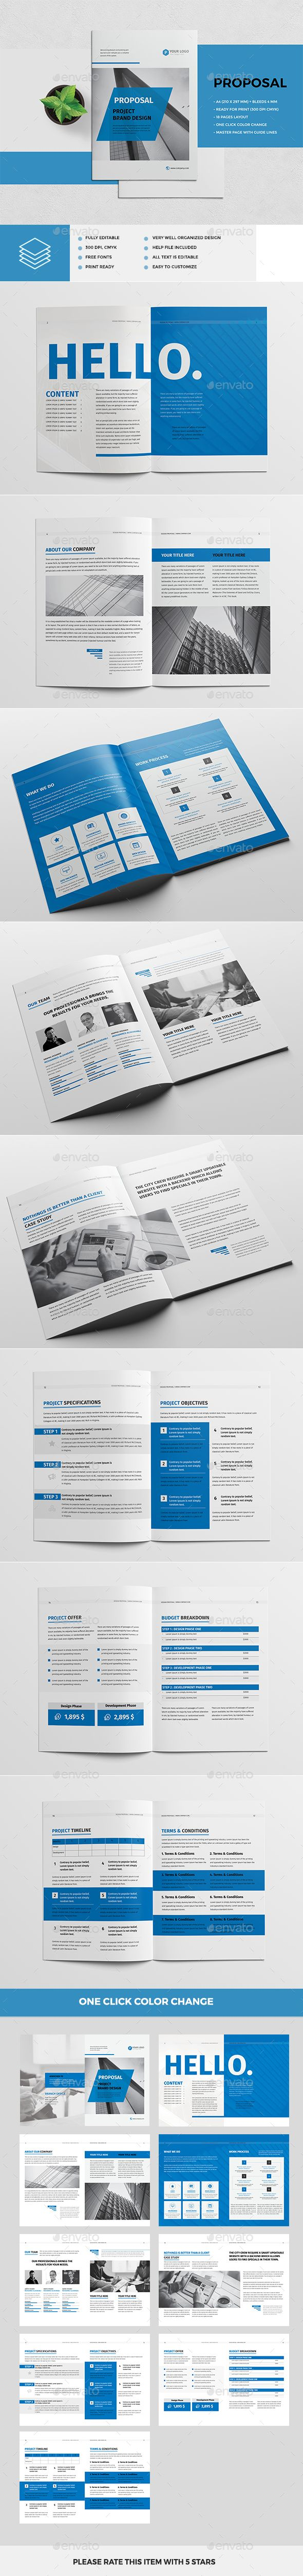 Proposal  Proposals Proposal Templates And Business Brochure